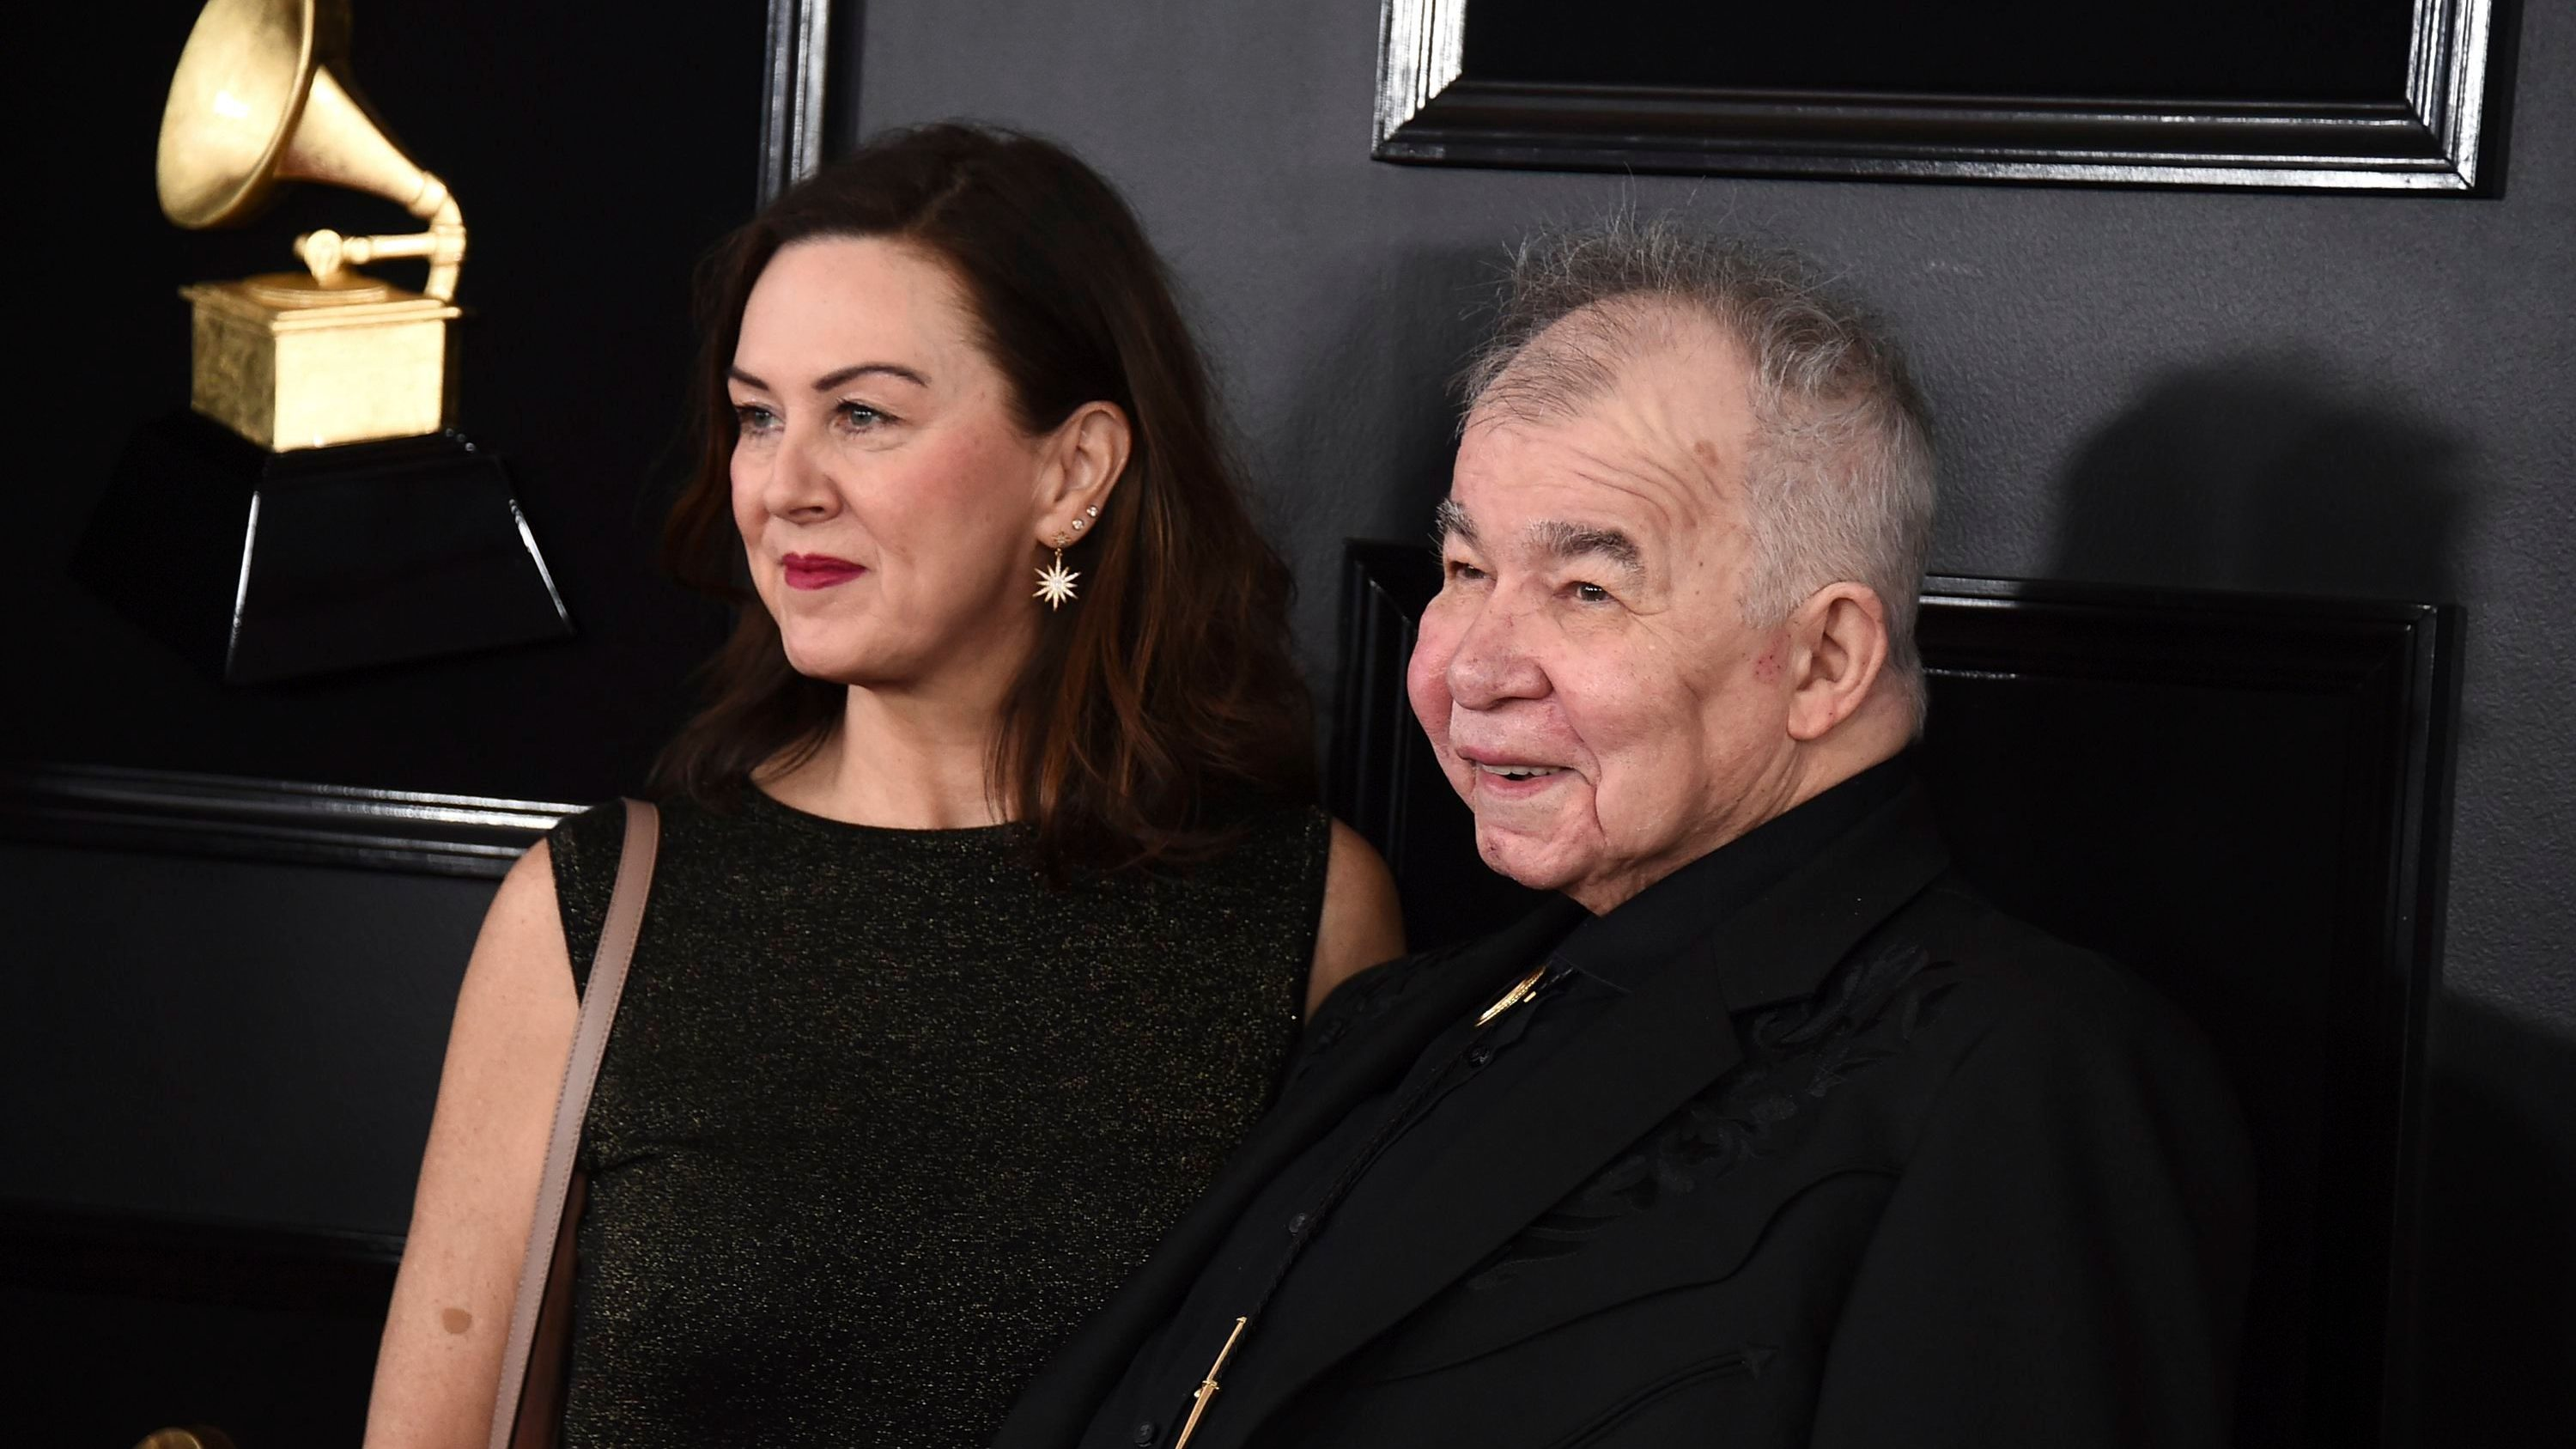 Take this virus seriously: John Prine's wife after his death from COVID-19